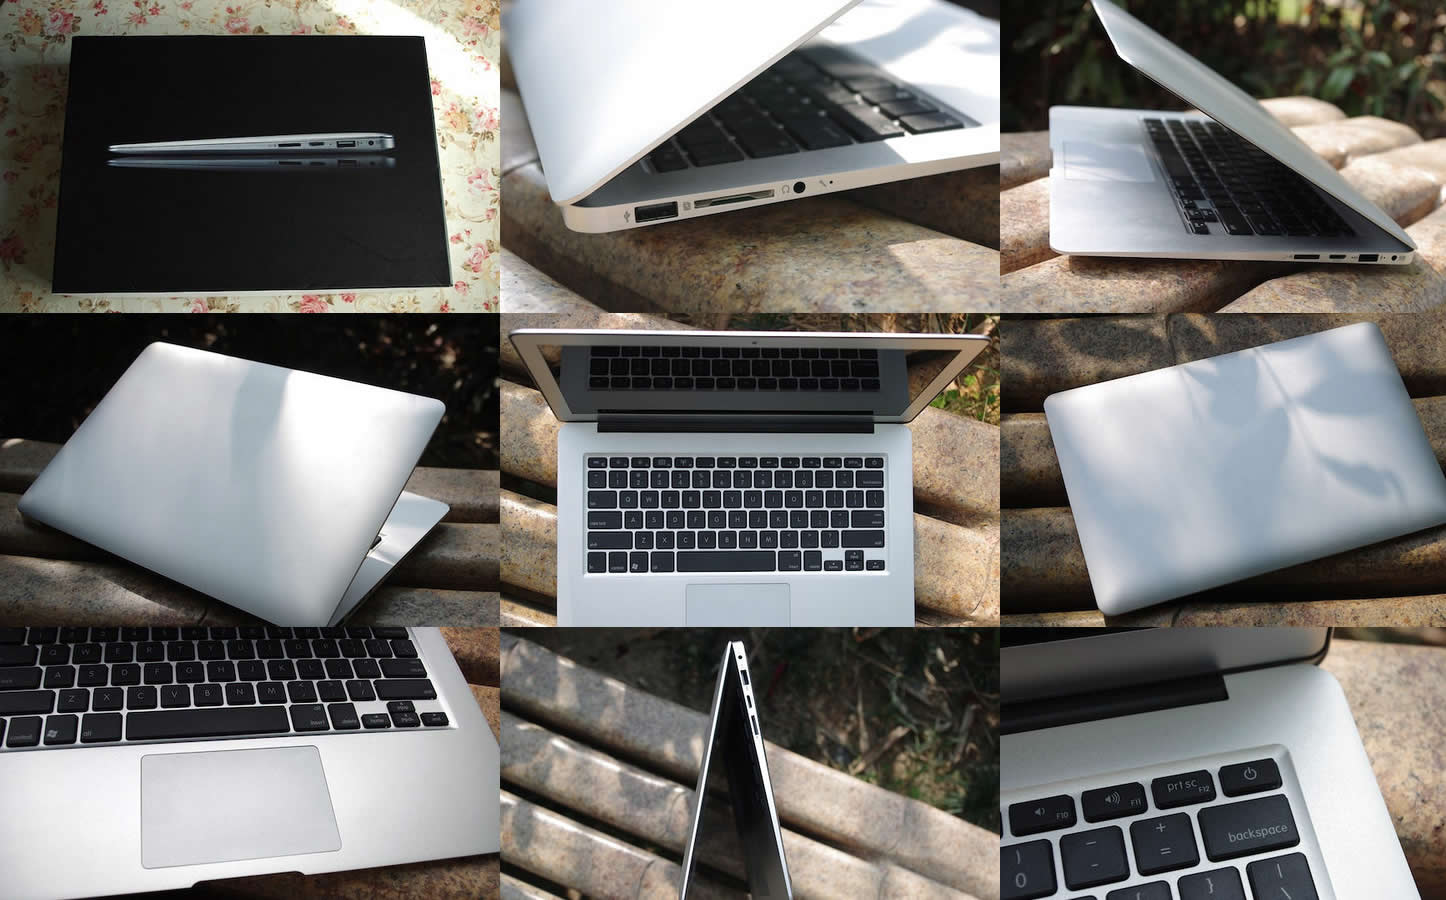 Macbook air clone